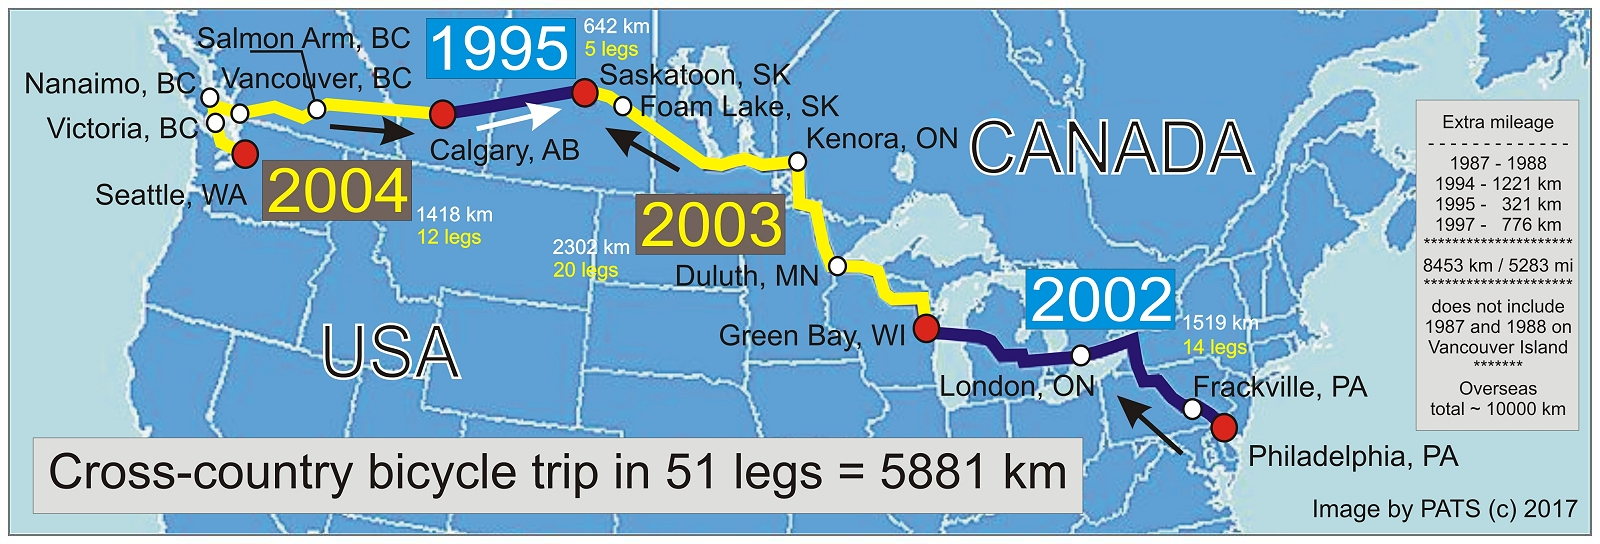 Cross-country in 51 legs - CANADA/USA - 5881 km - 3654 mi